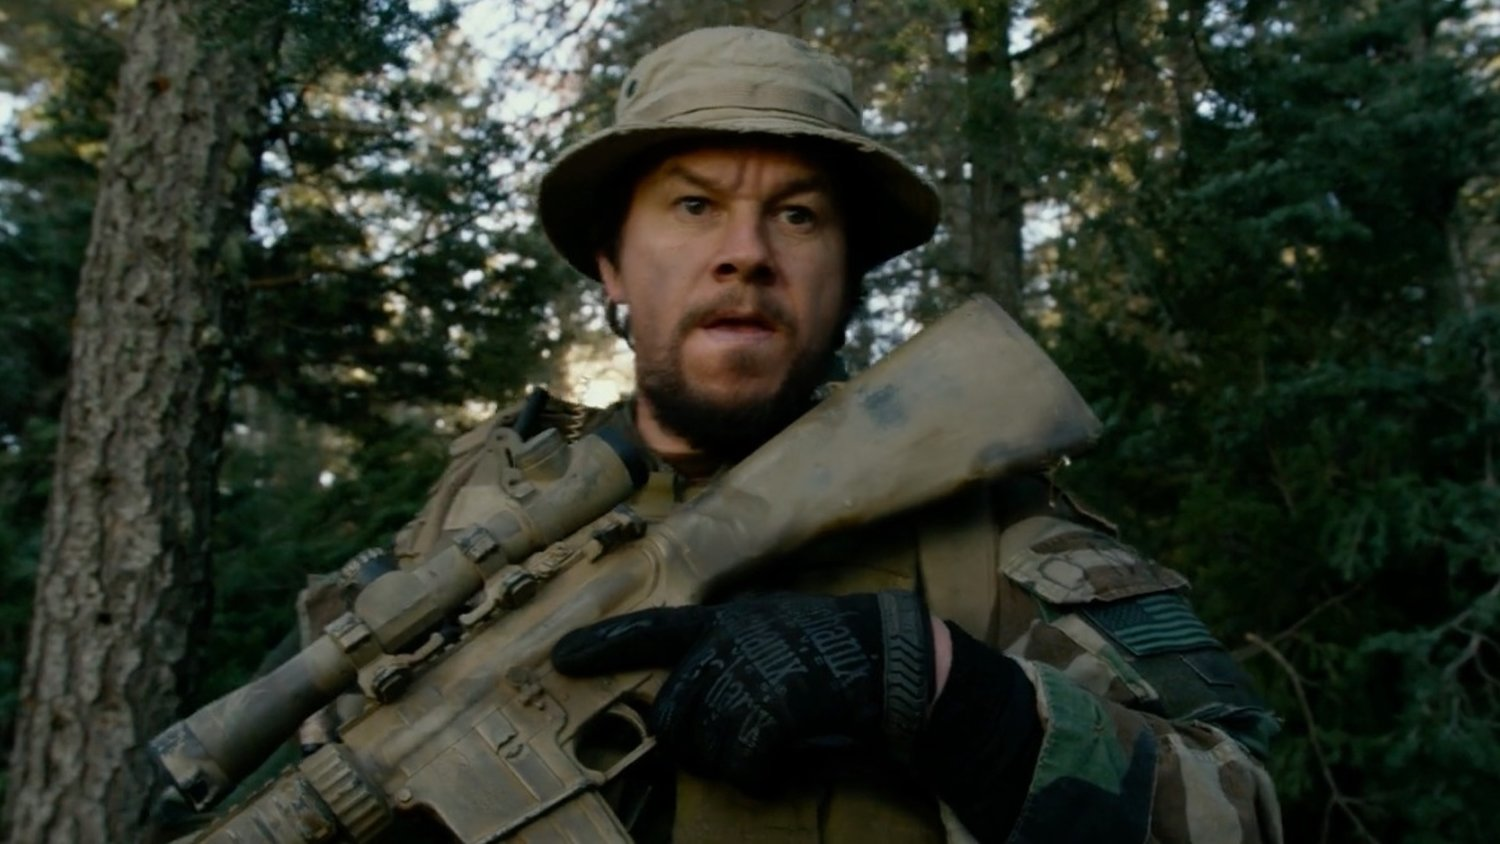 Peter Berg and Mark Wahlberg Want to Make a MILE 22 Film Trilogy and I Want to See it